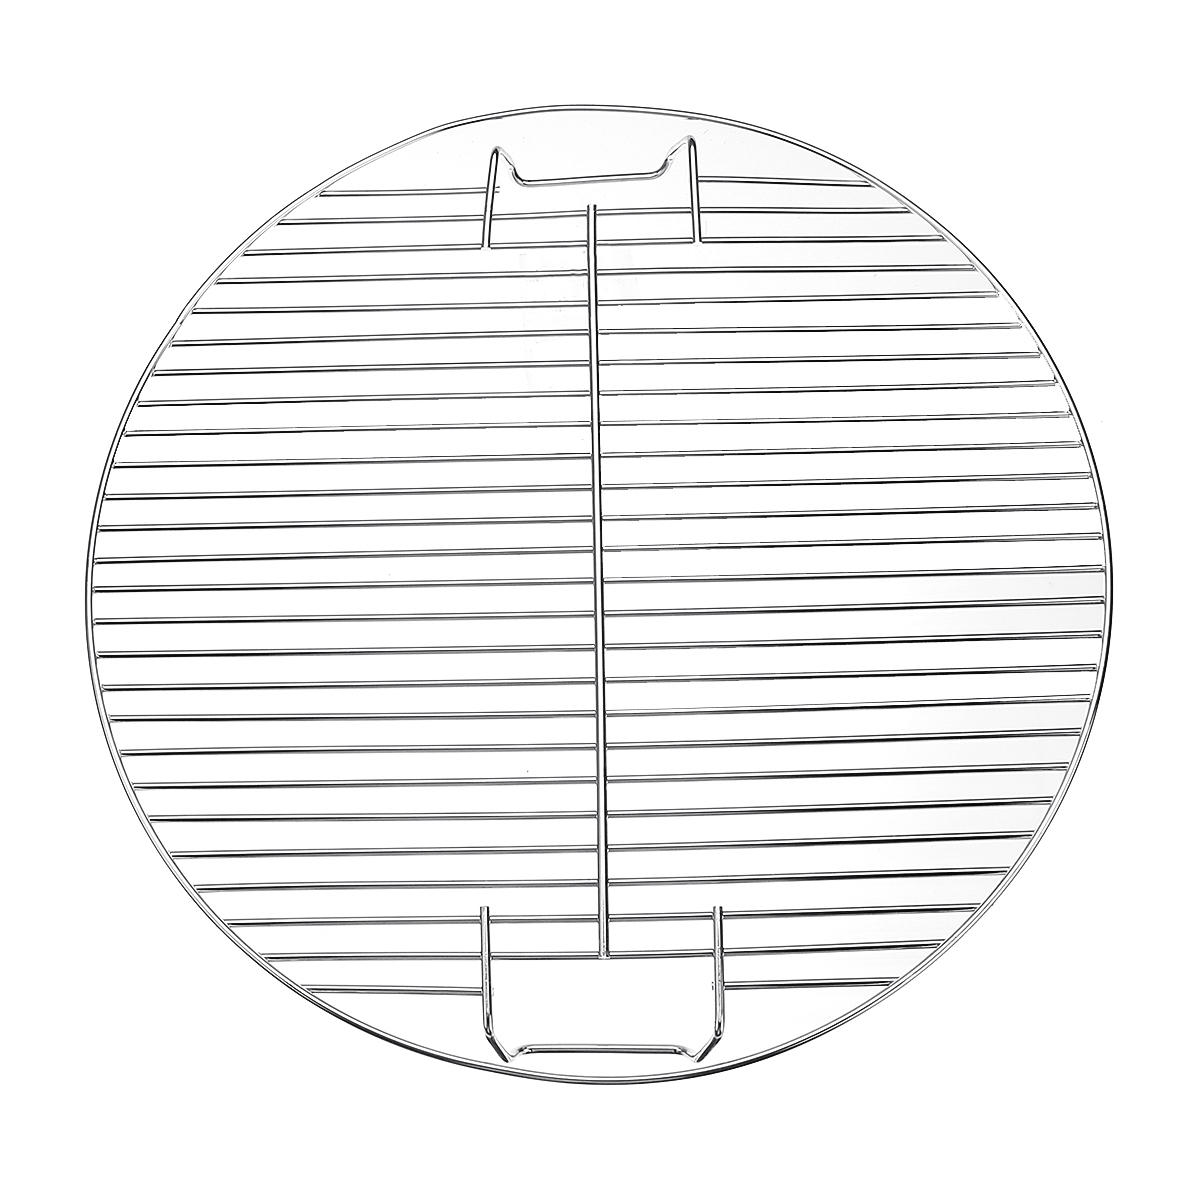 44.5cm Round BBQ Grill Grate Charcoal BBQ Grill Pan Replacement Metal Cooking Barbecue Mesh Frame